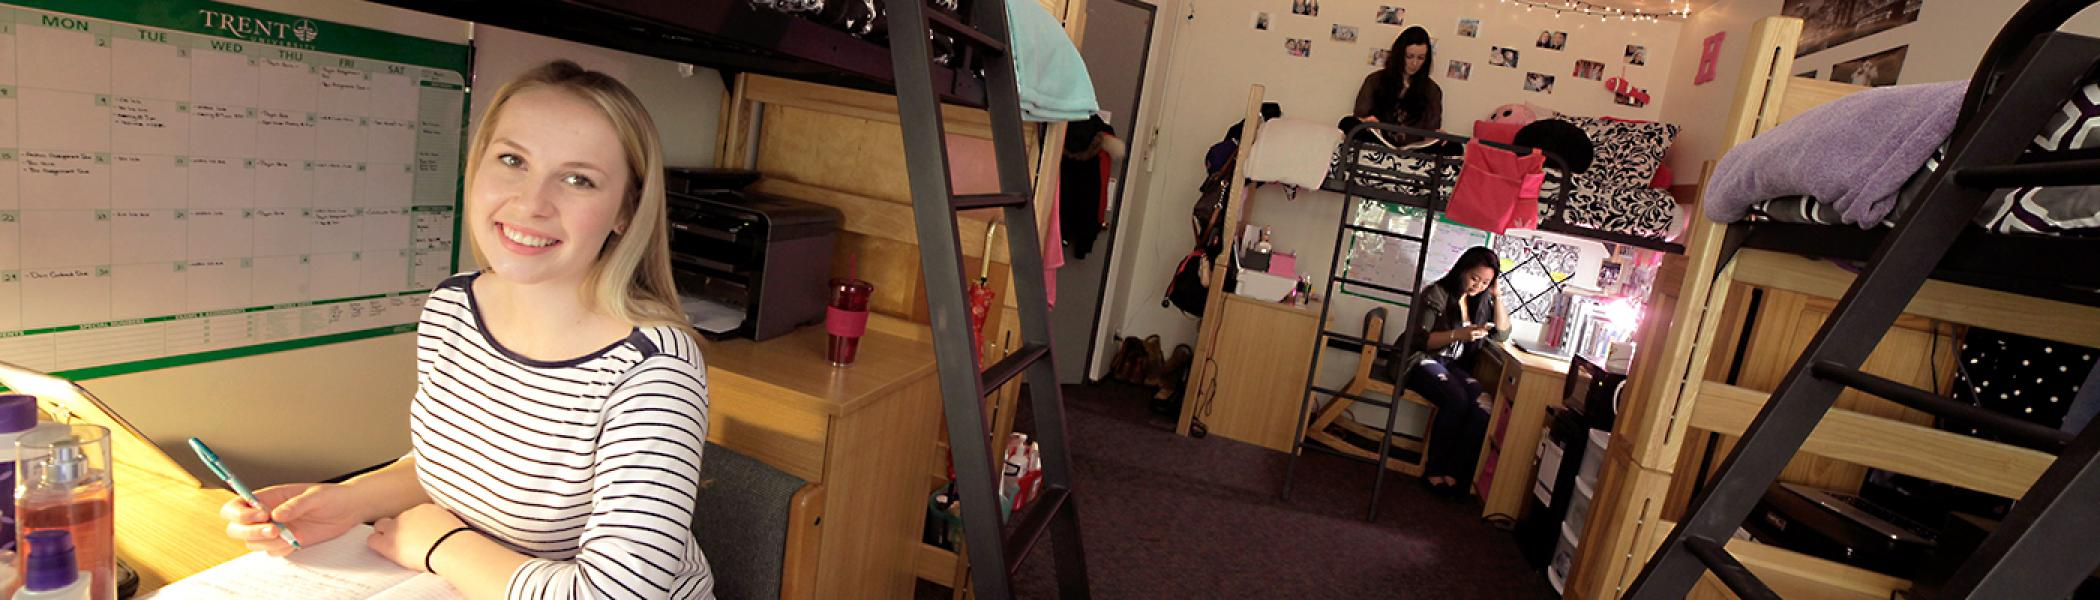 Students studying in Otonabee College dorm room